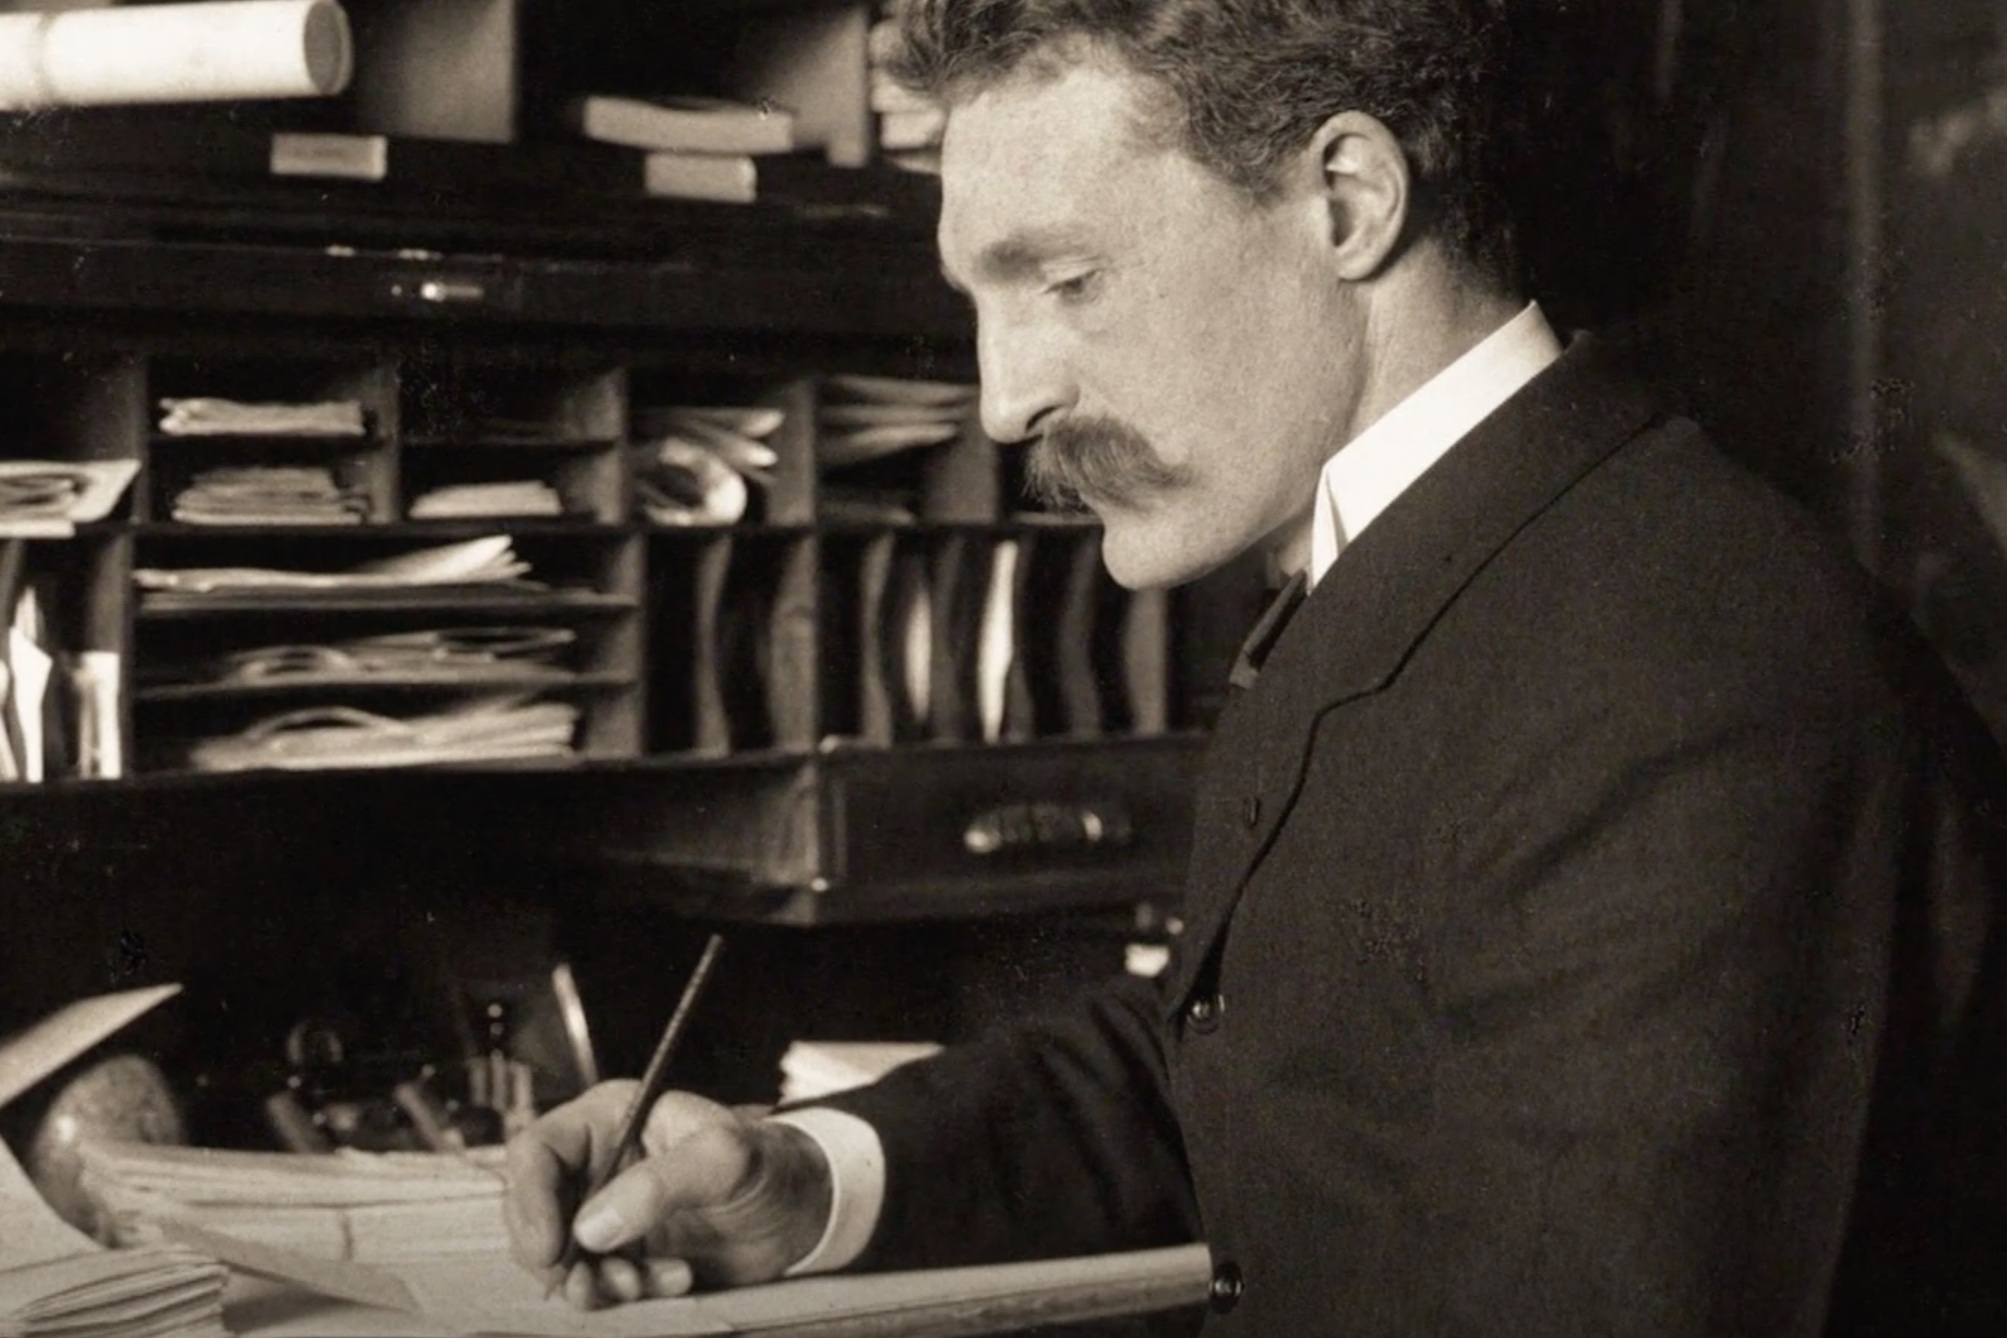 Gifford Pinchot, first Chief of the  United States Forest Service  from 1905 until 1910